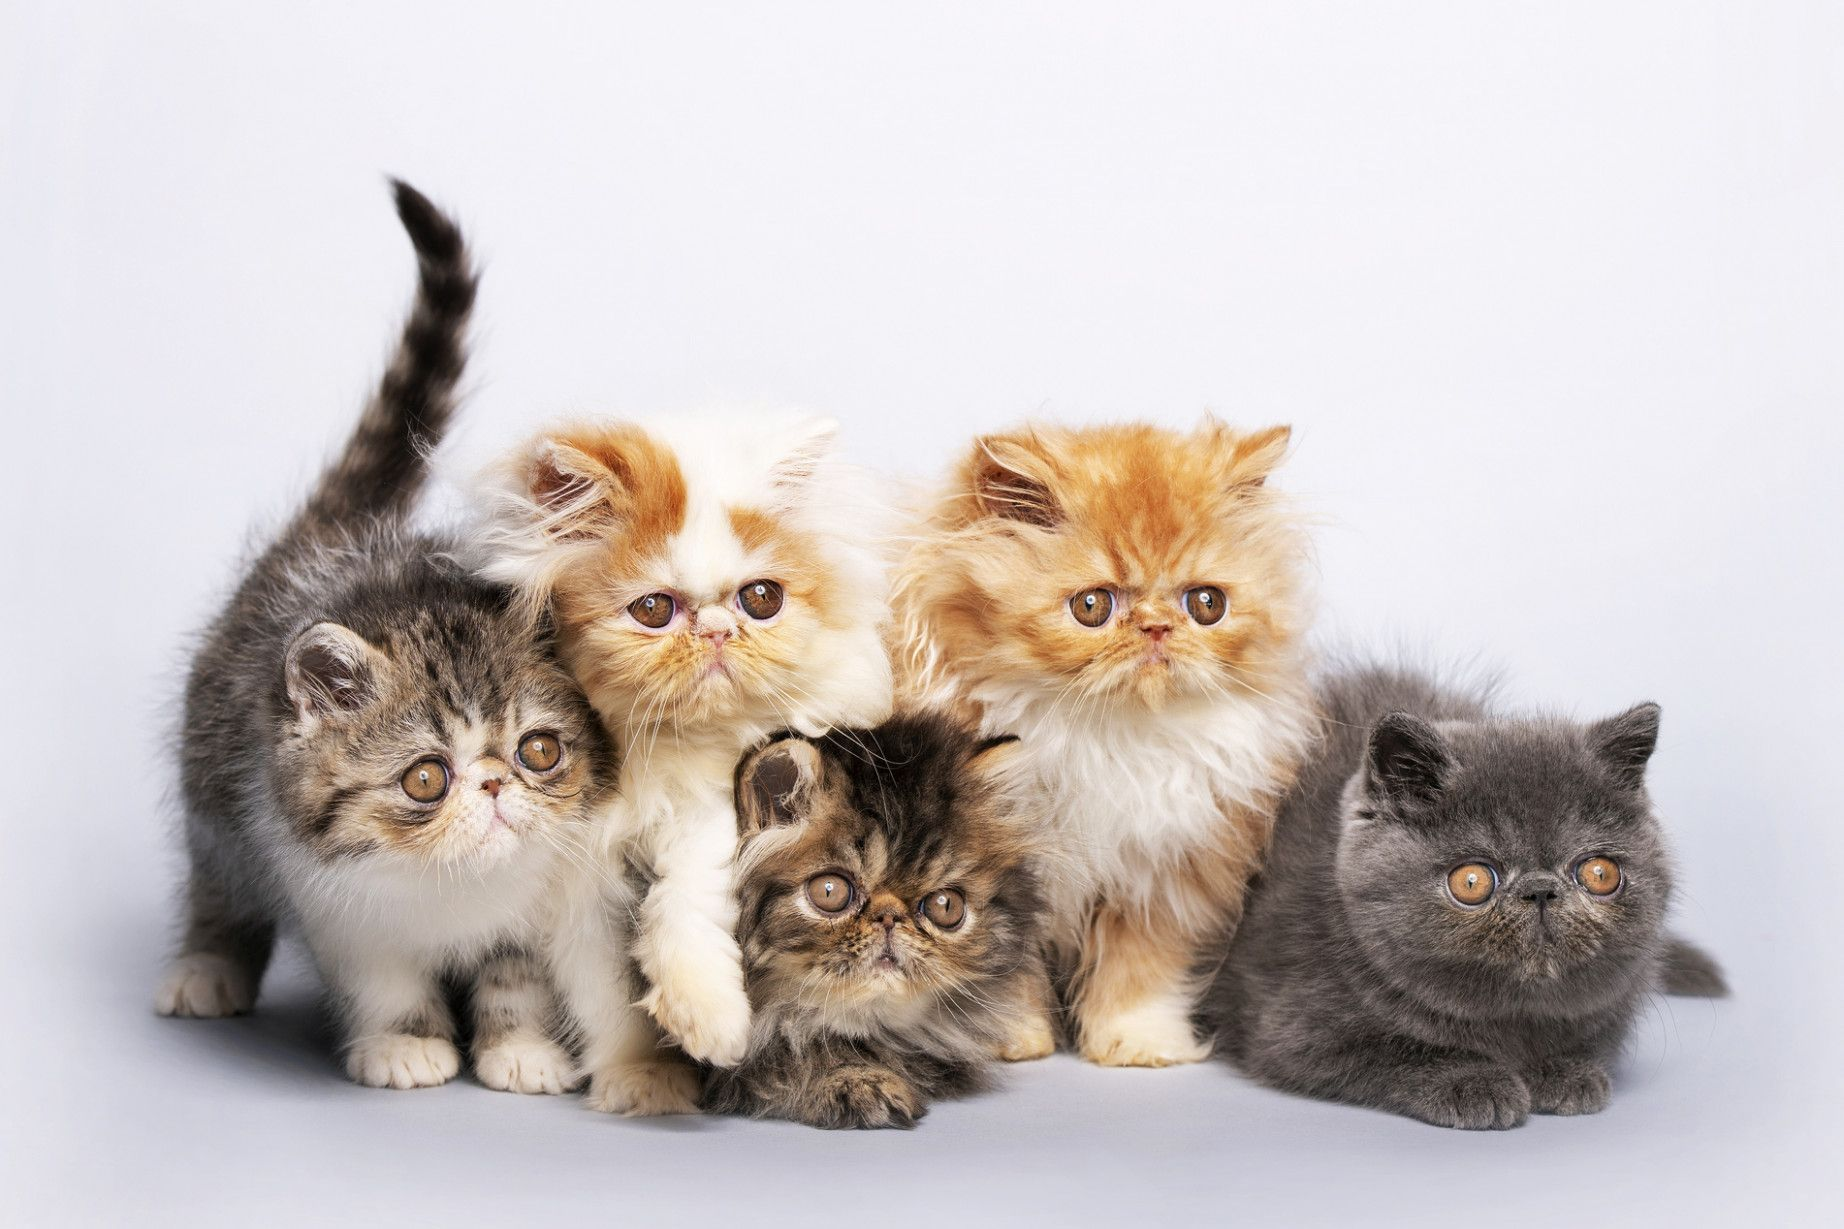 12 Persian Cat Craigslist Image in 2020 Persian cats for